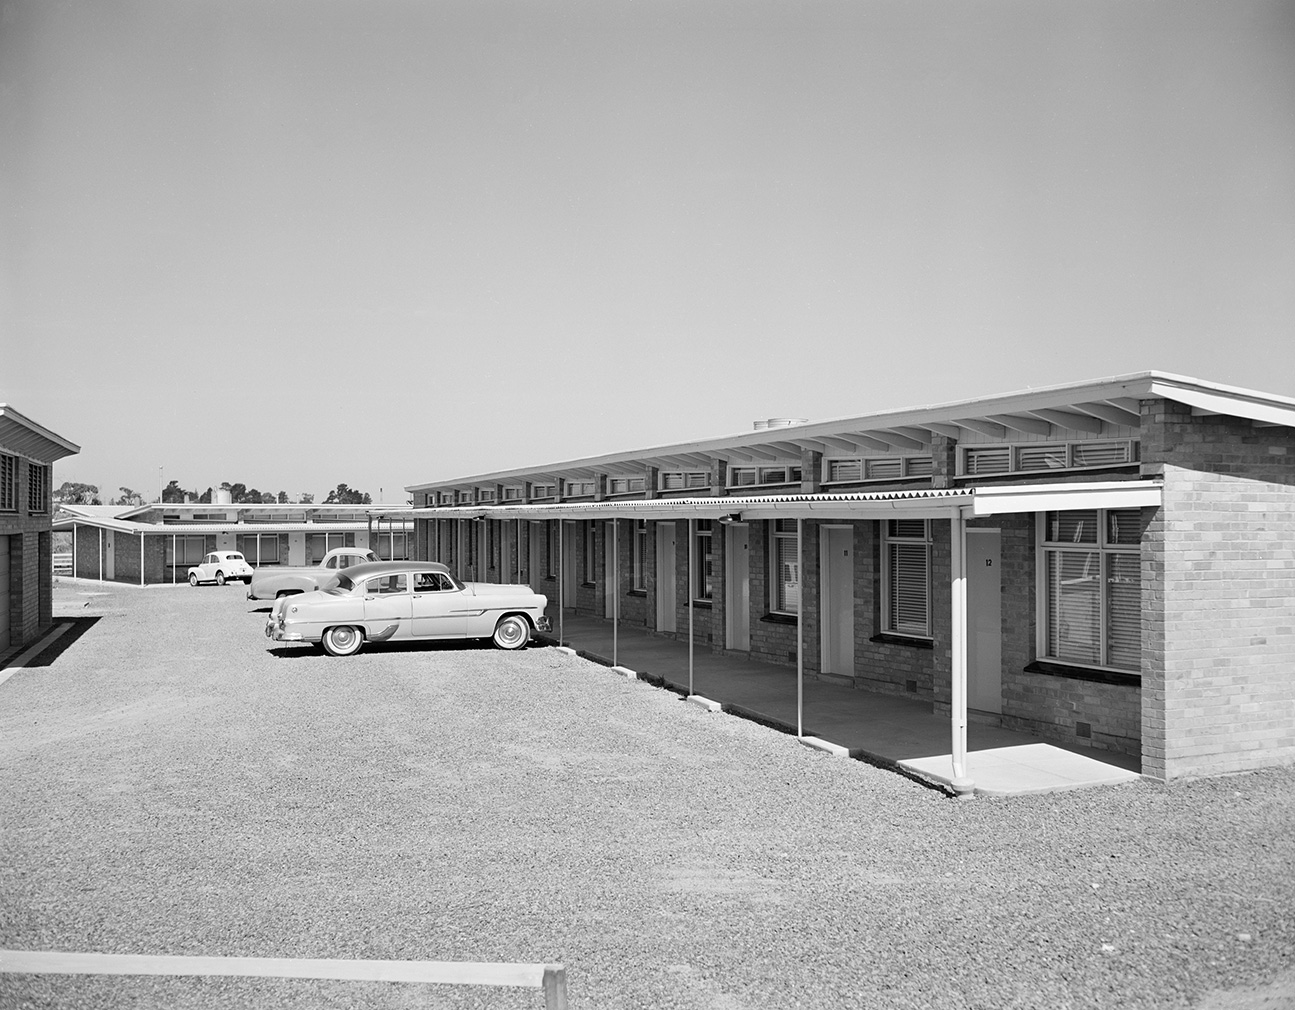 Explore Australia's midcentury motels: the roadside boltholes were inspired by American motels